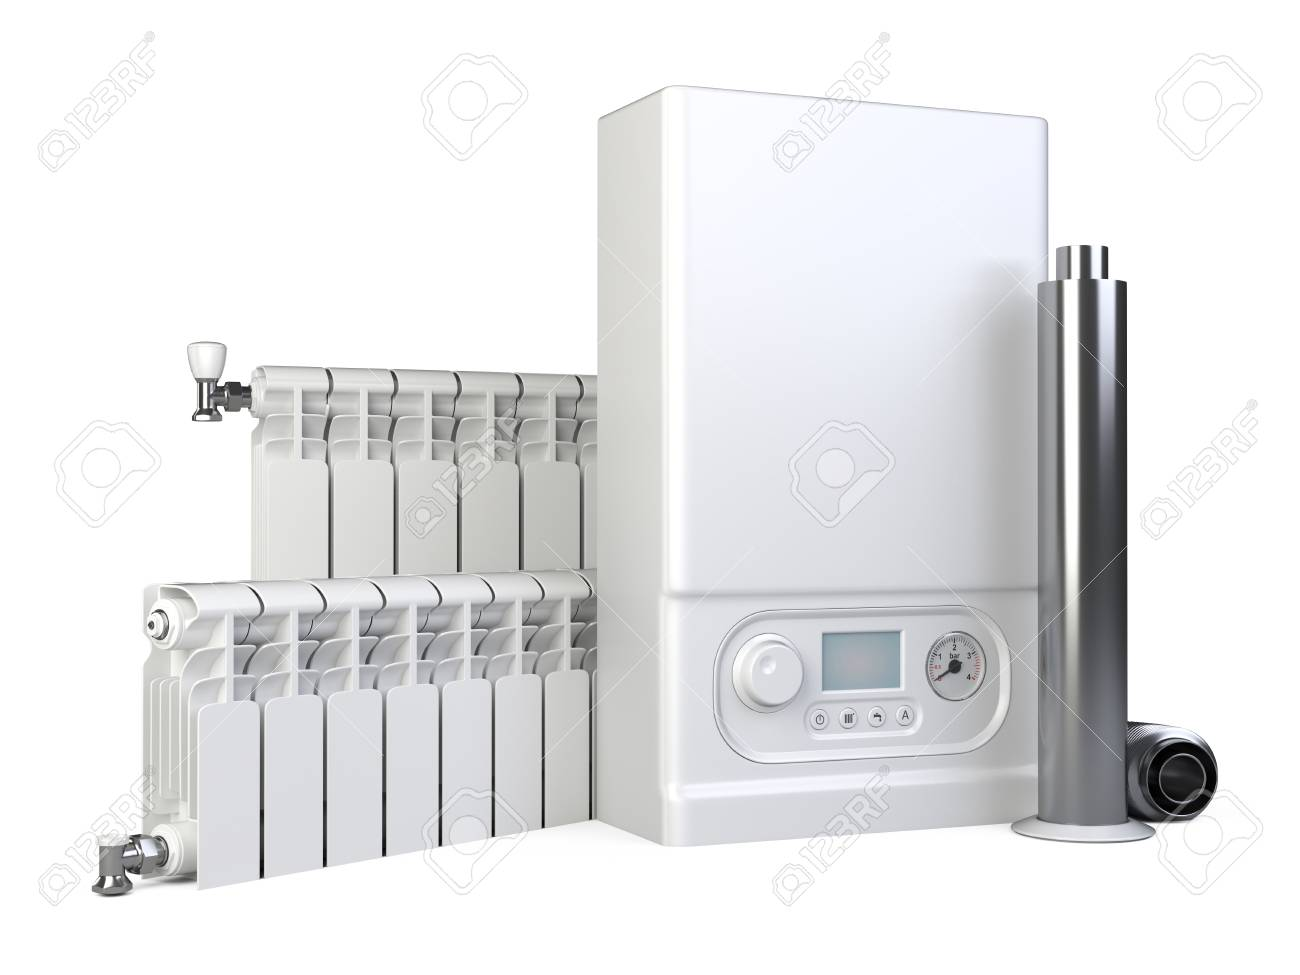 Gas Boiler Heater Radiator Set And Chimney Pipe For House Heating